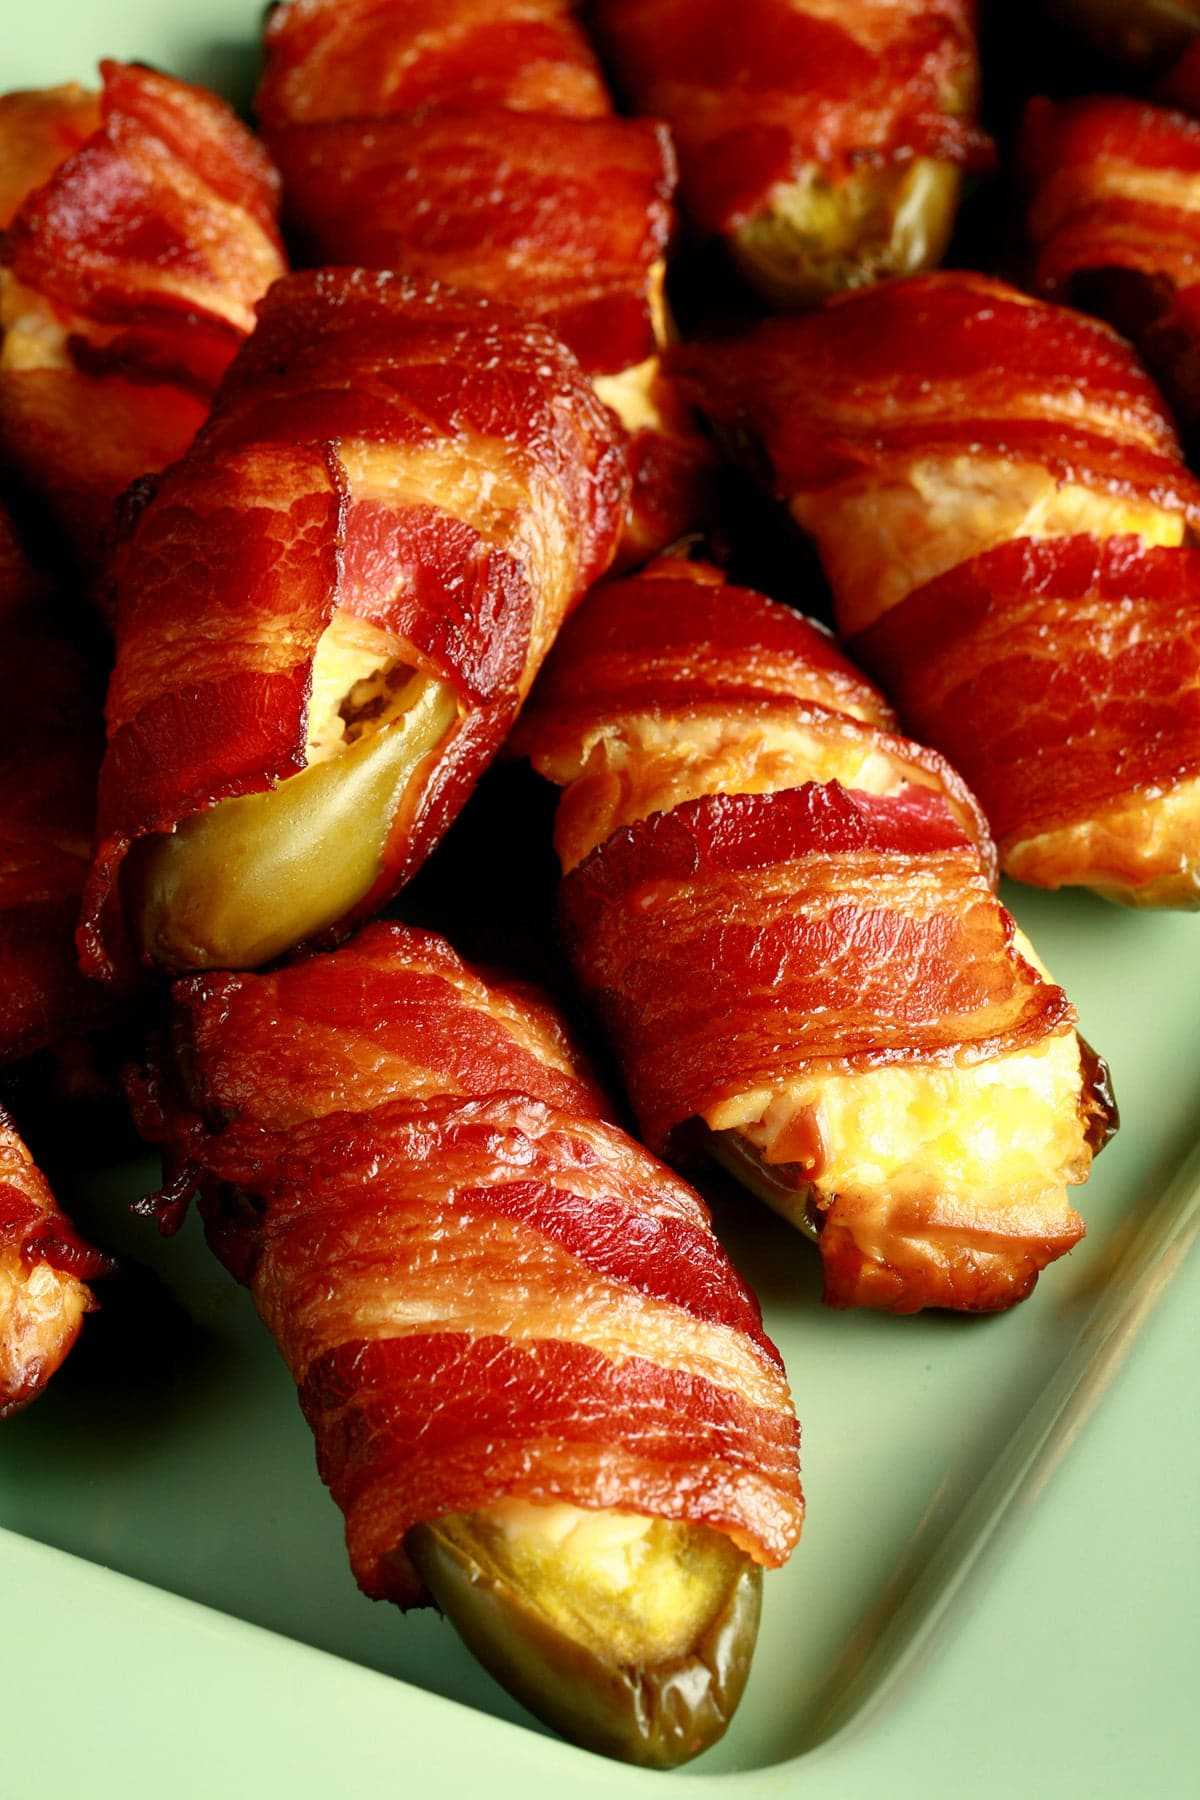 A close up view of smoked jalapeno poppers.